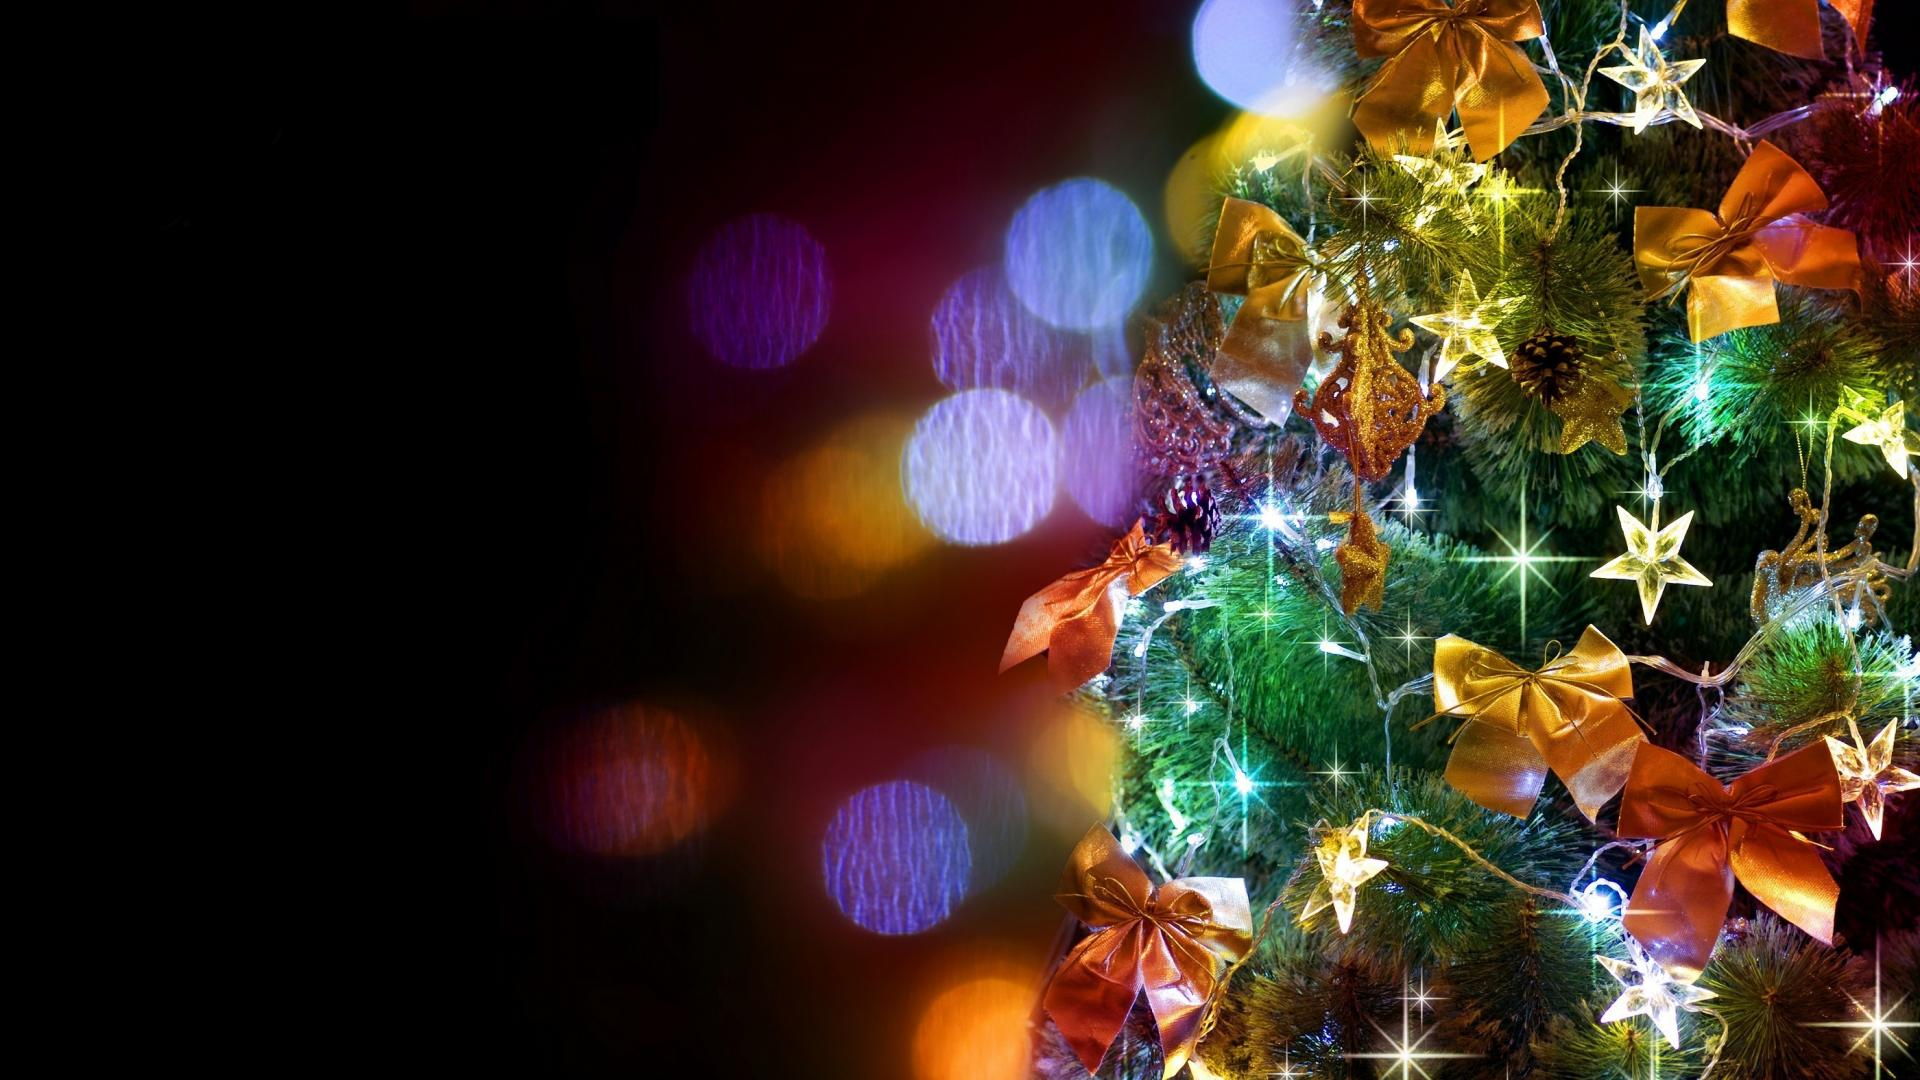 Christmas Tree Decorations Desktop HD Wallpaper of 1920x1080